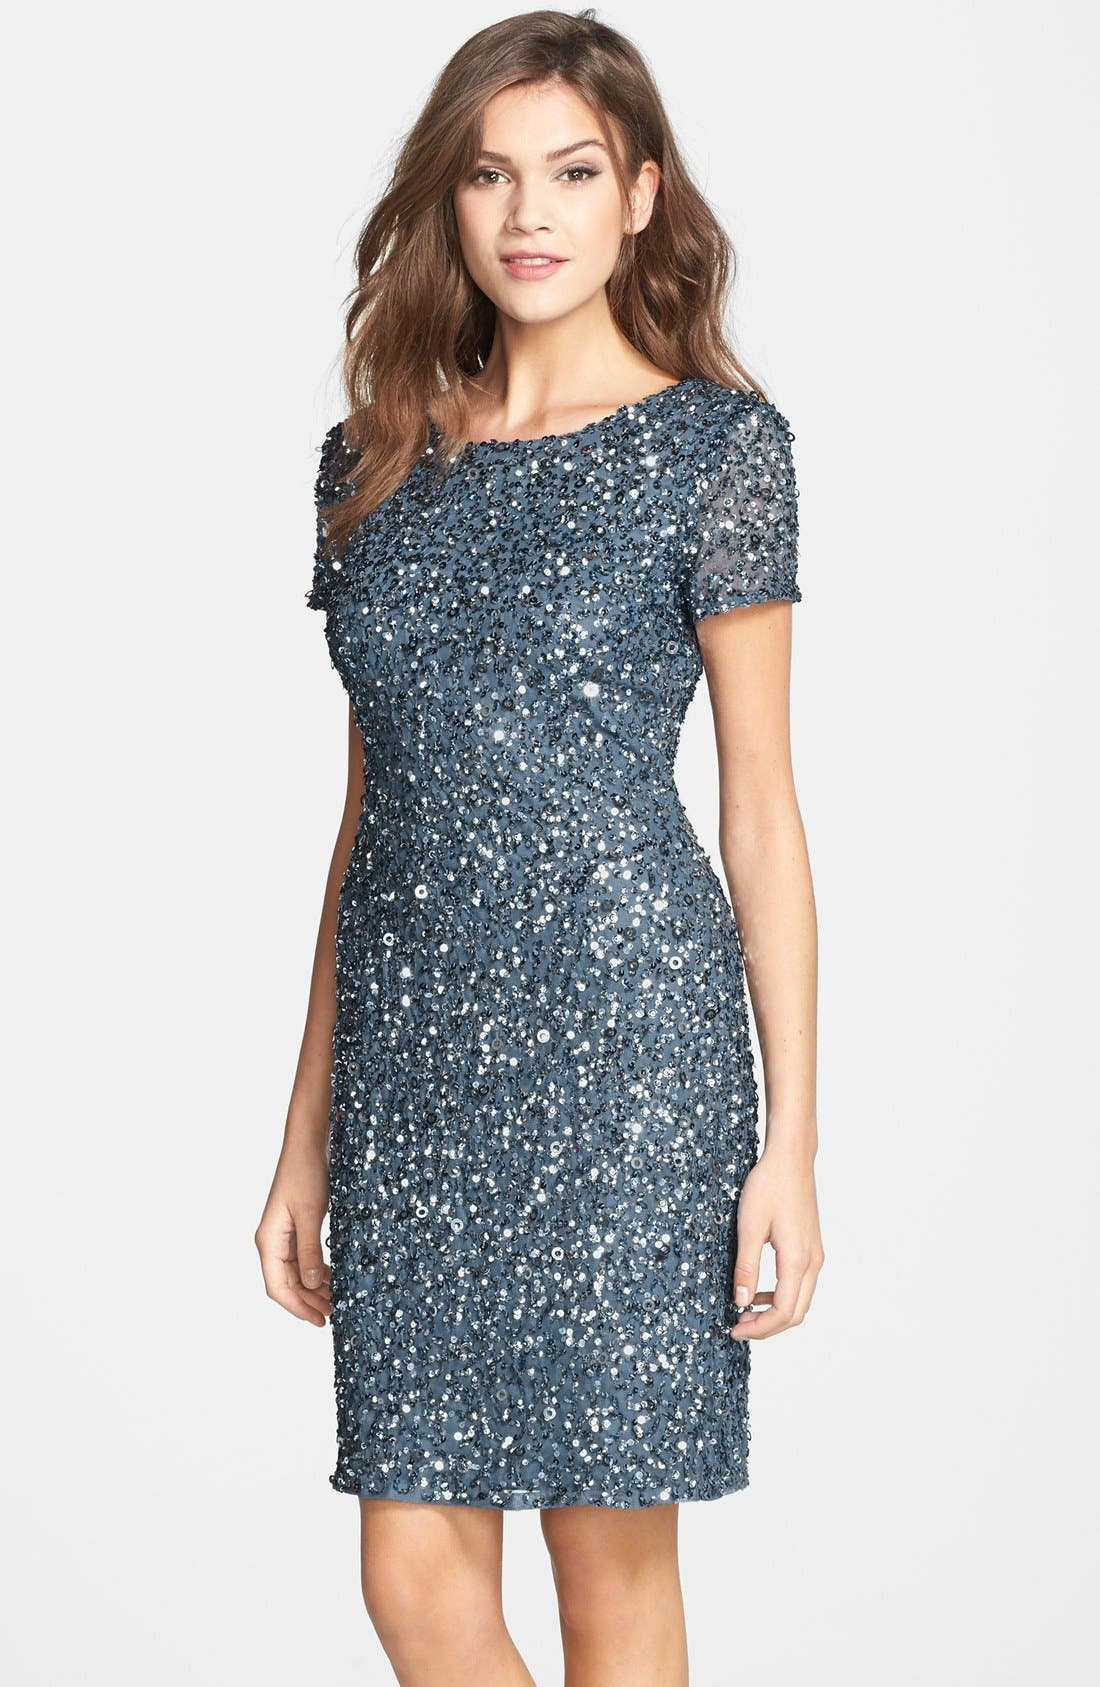 Alternate Image 1 Selected - Adrianna Papell Sequin Mesh Sheath Dress (Regular & Petite)